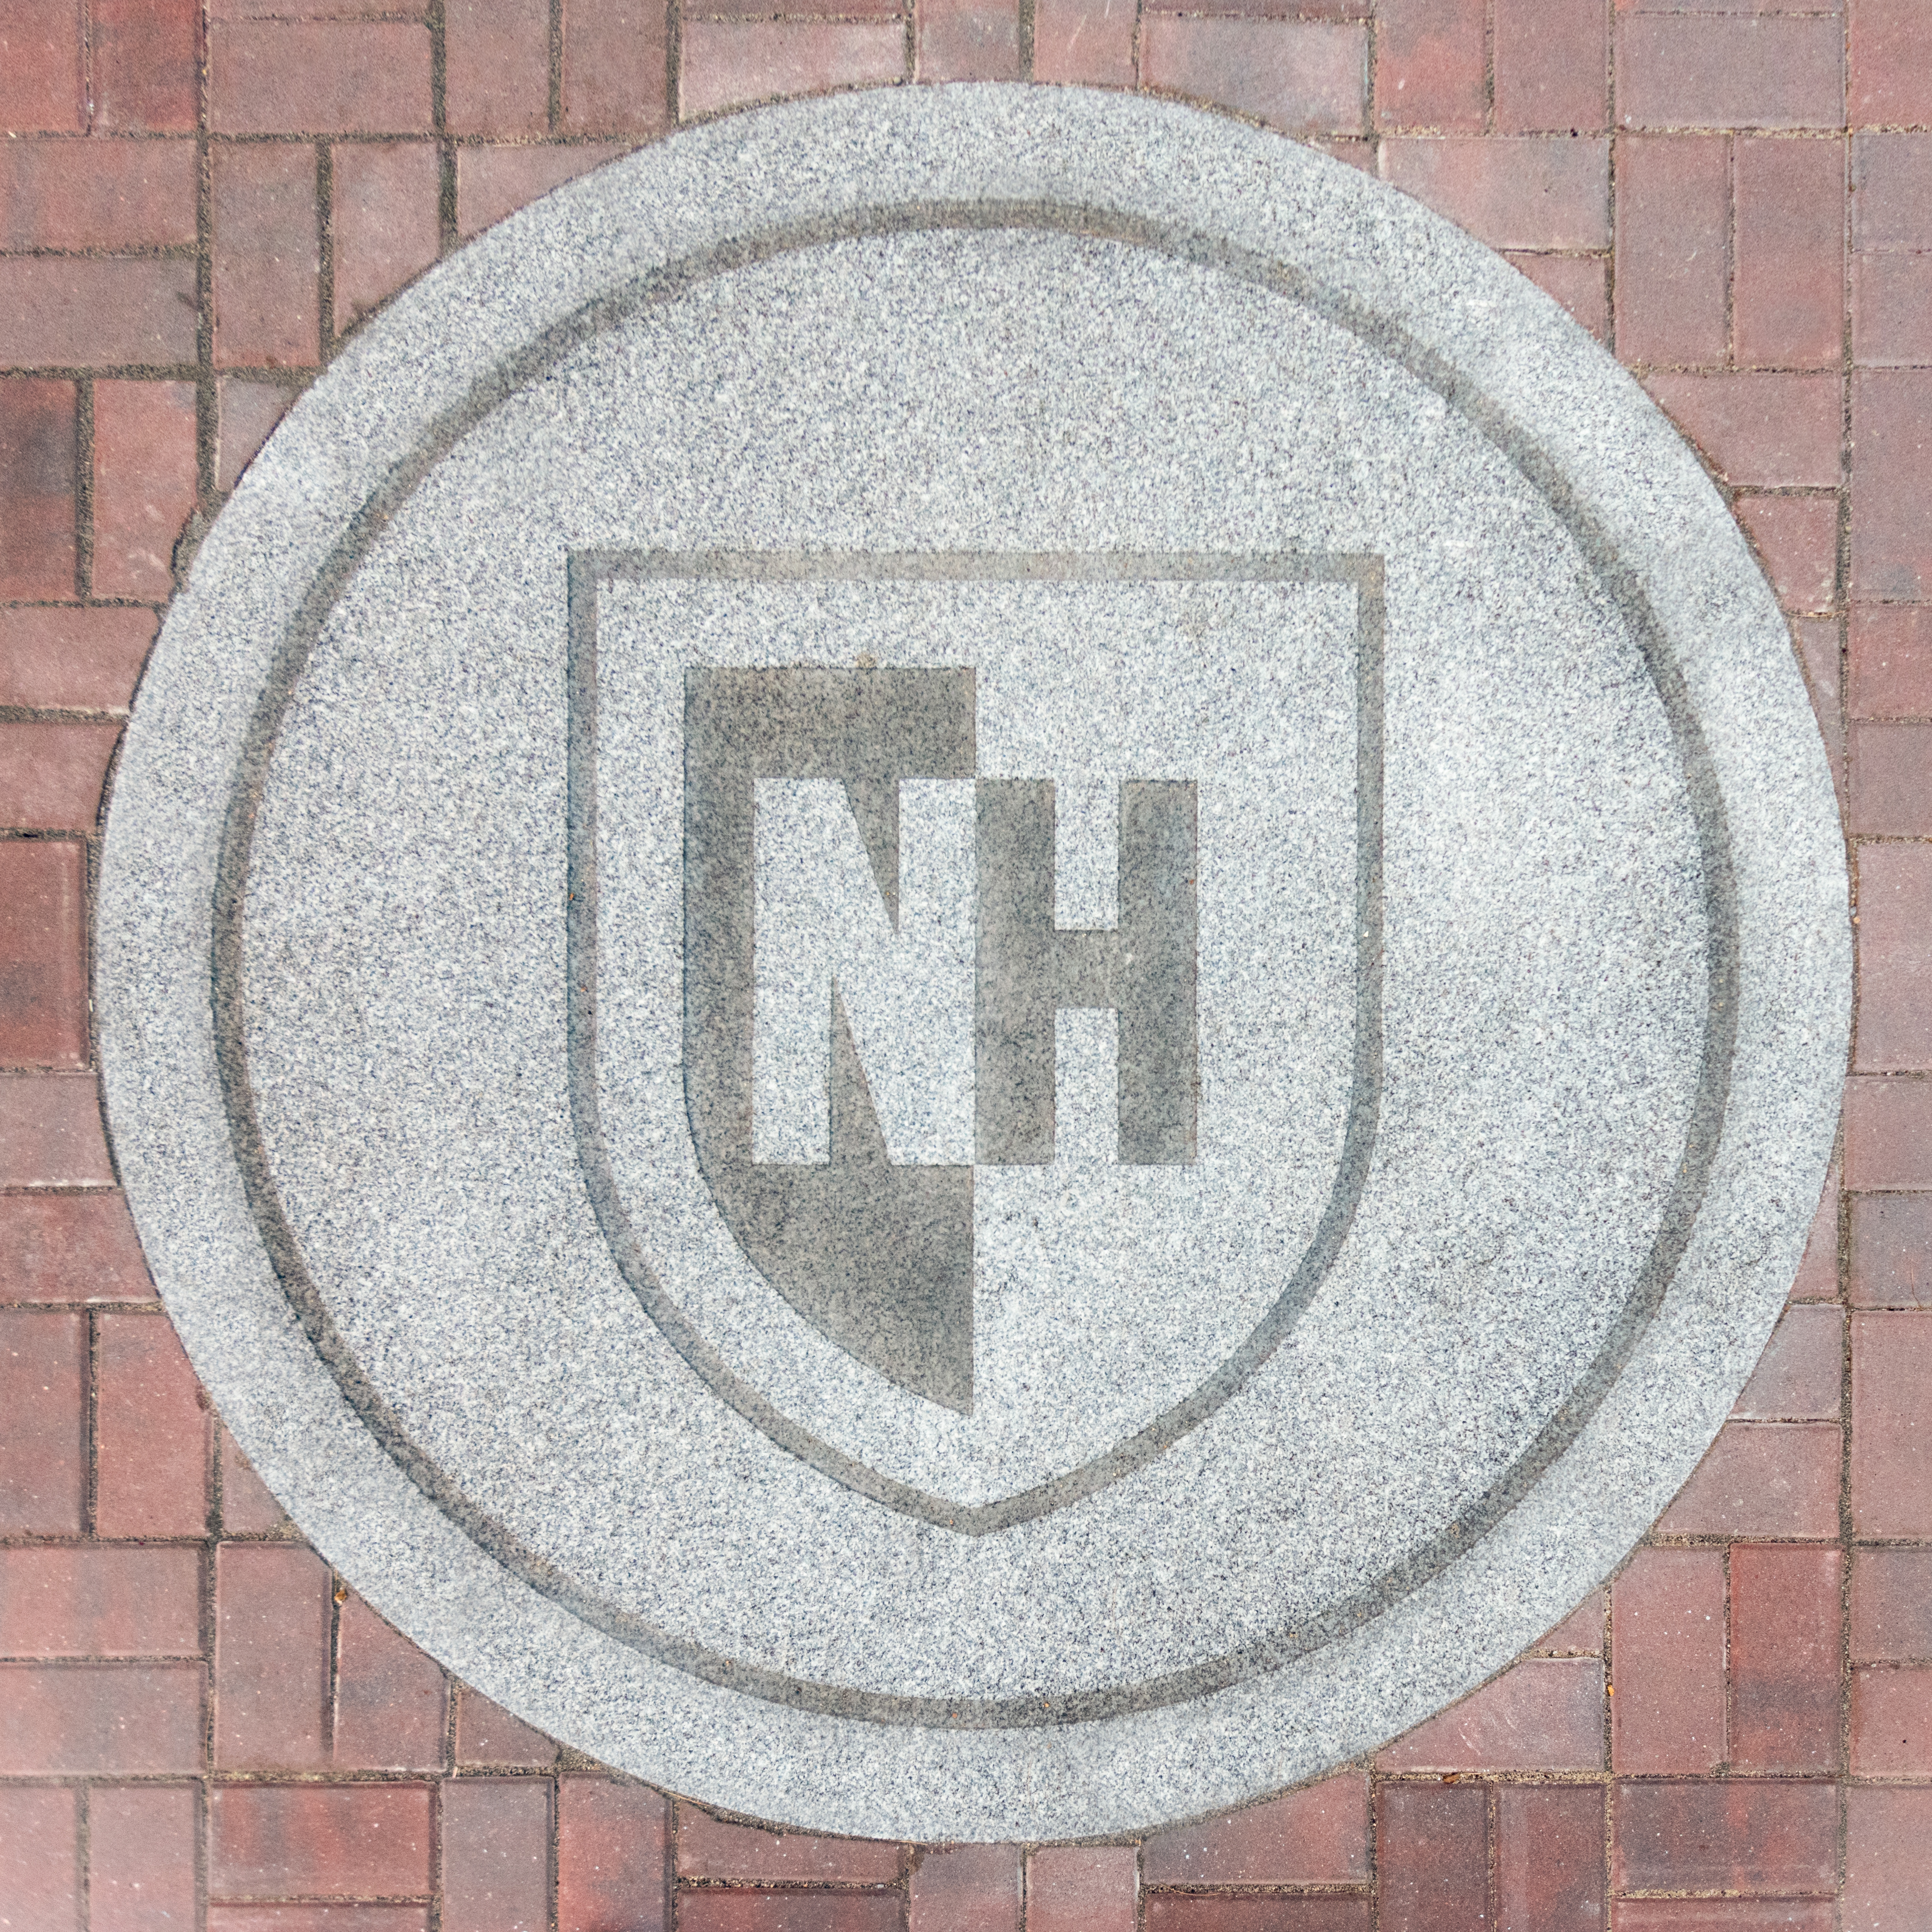 University of New Hampshire - Rock - Hardscaping - Durham, NH (2 of 5)